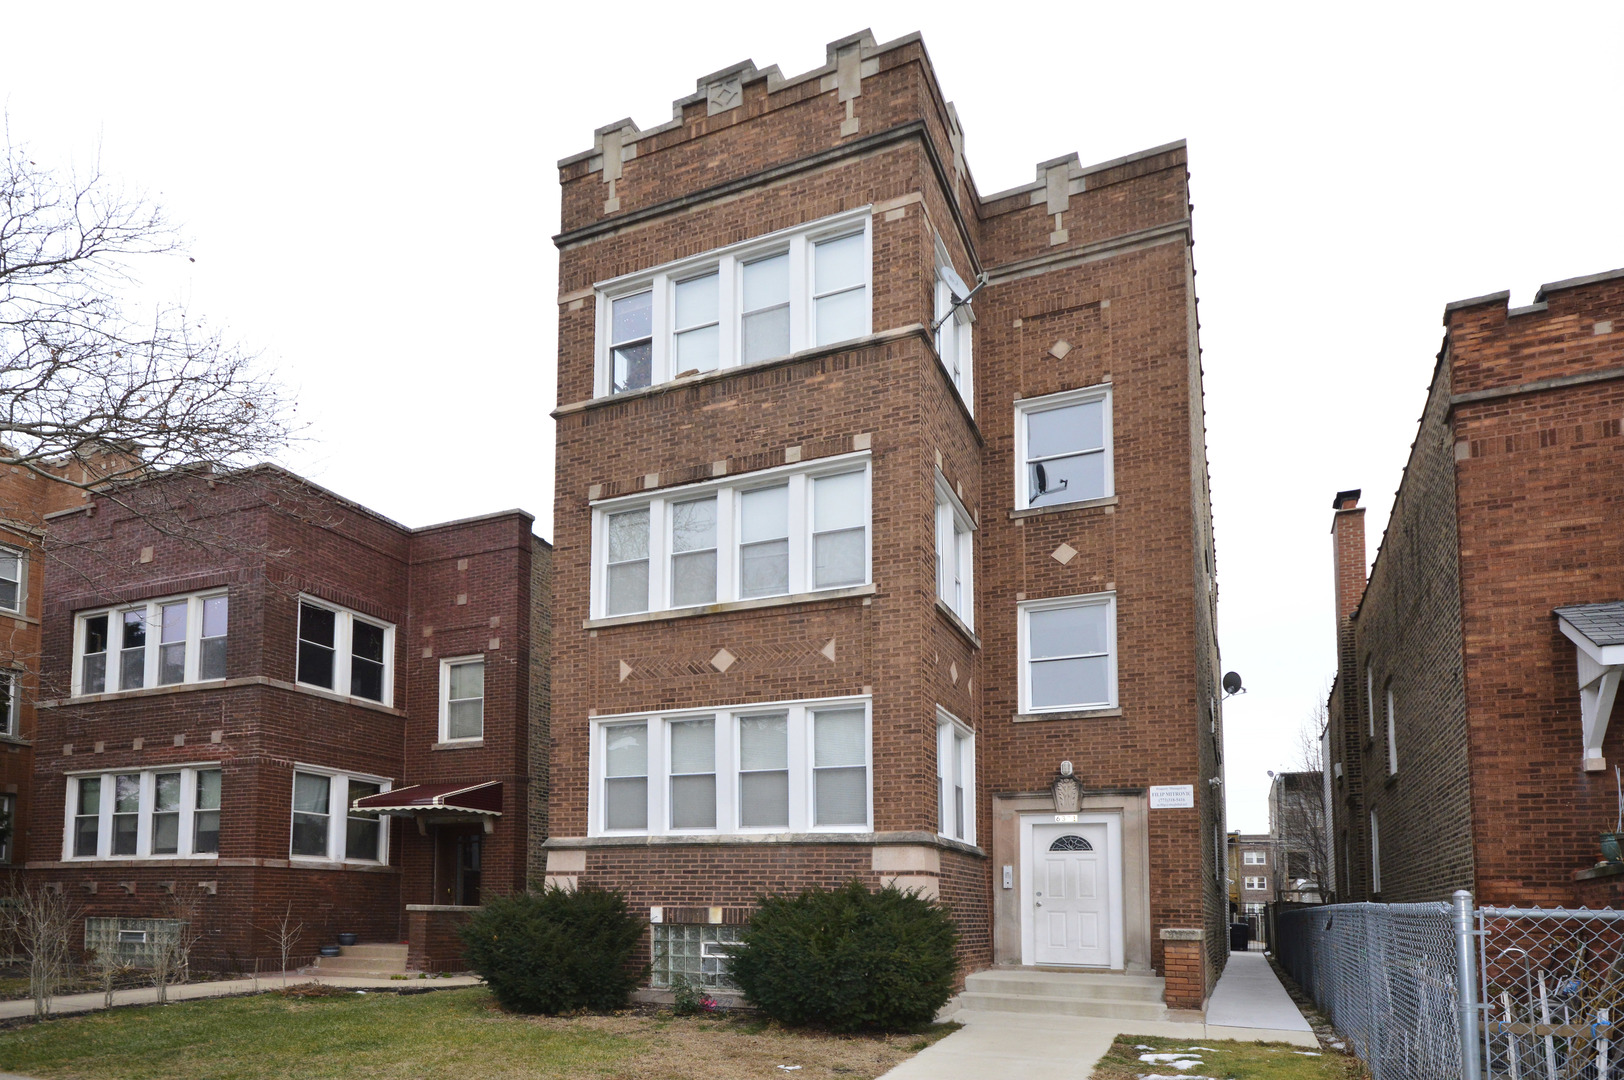 Beautiful vintage legal 4 flat in hot West Ridge.  Building features three spacious 3BR apartments w